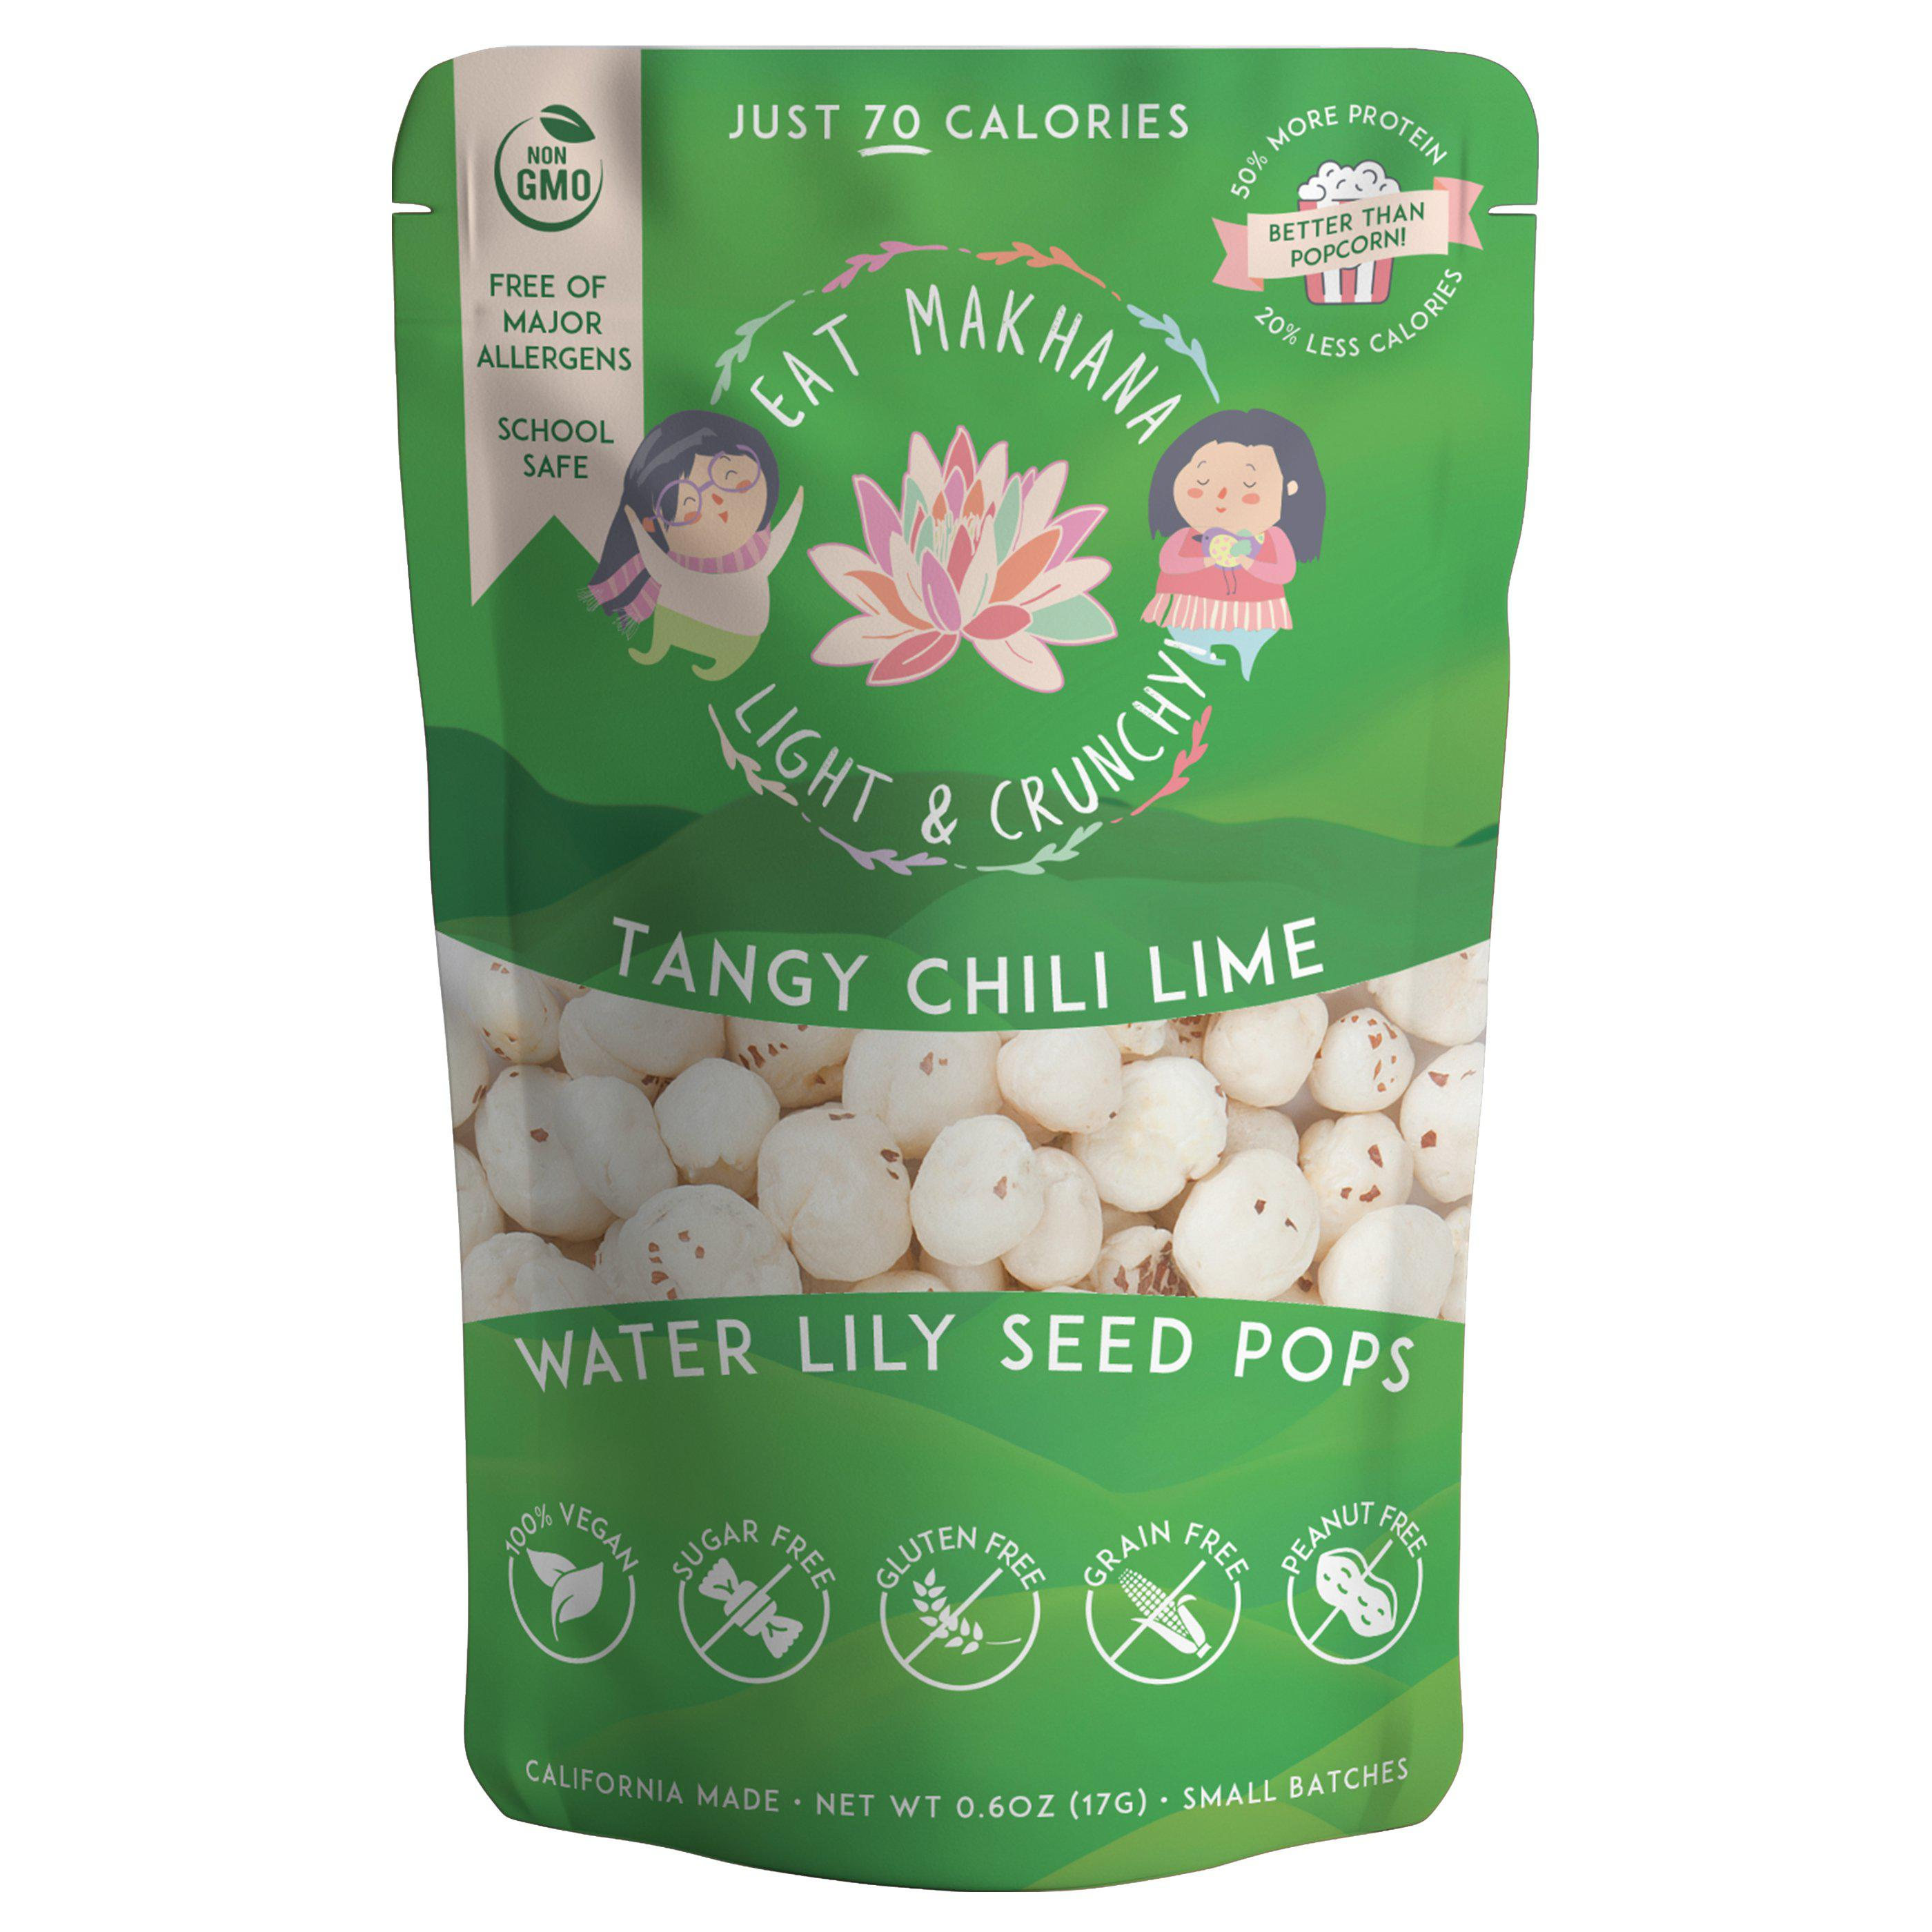 Spicy Variety Pack Lily Seed Pops • 6 pack • Medium • 70 calories - Eat Makhana